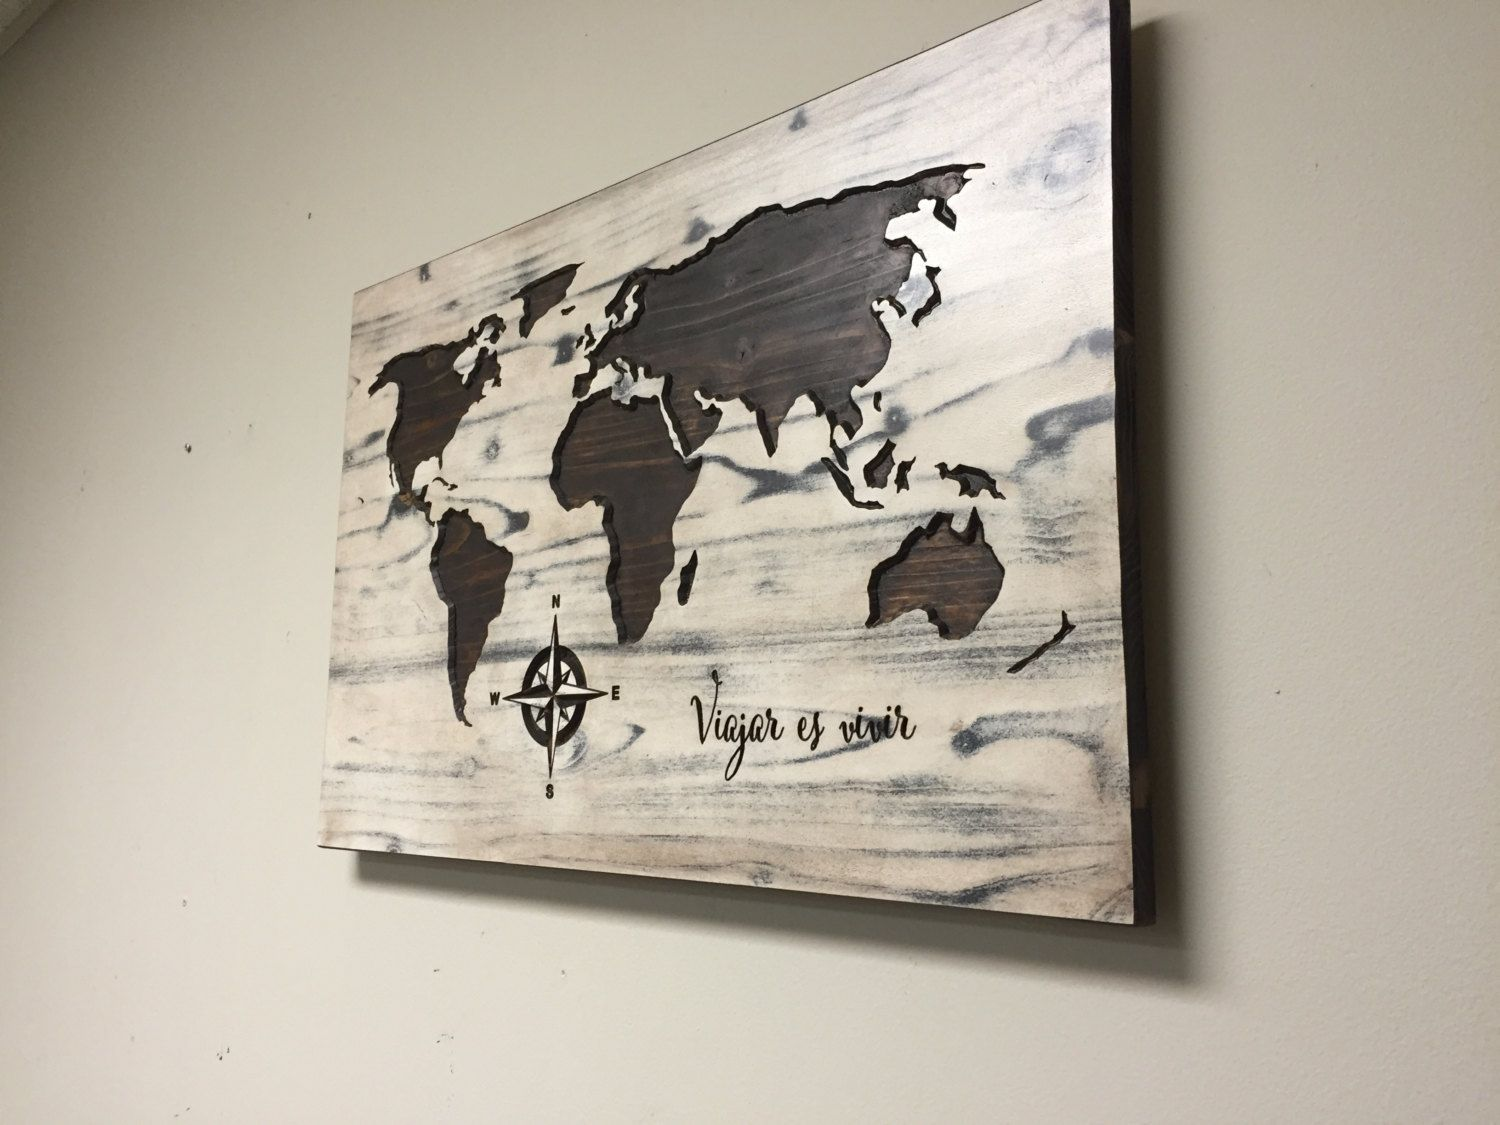 Carved world map wall art wooden world map wood decal world map carved world map wall art wooden world map wood decal world map poster gumiabroncs Choice Image